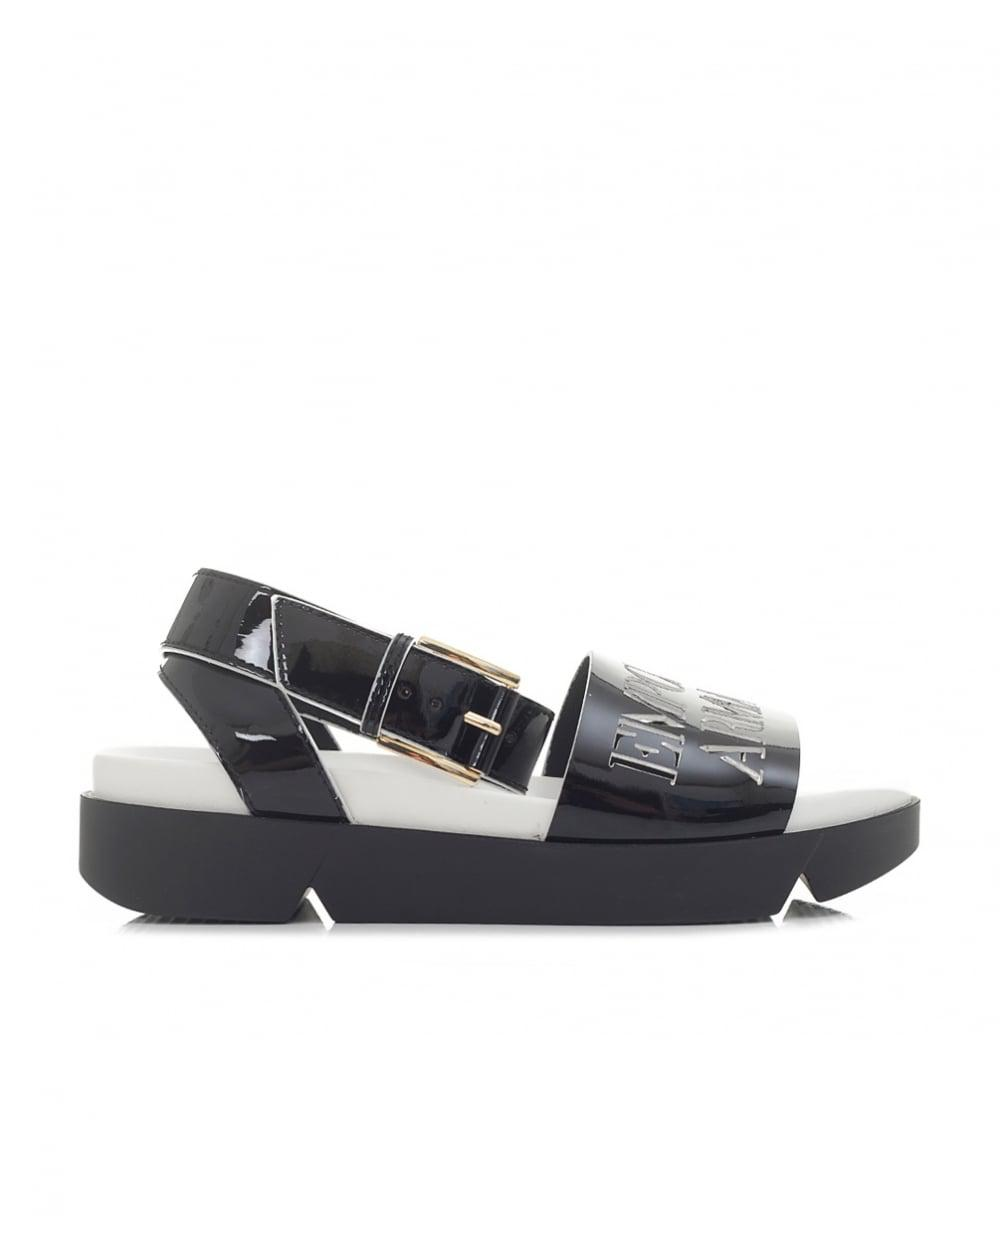 Emporio Armani Cut Out Logo Wedge Sandals in Black - Lyst 182df441e96